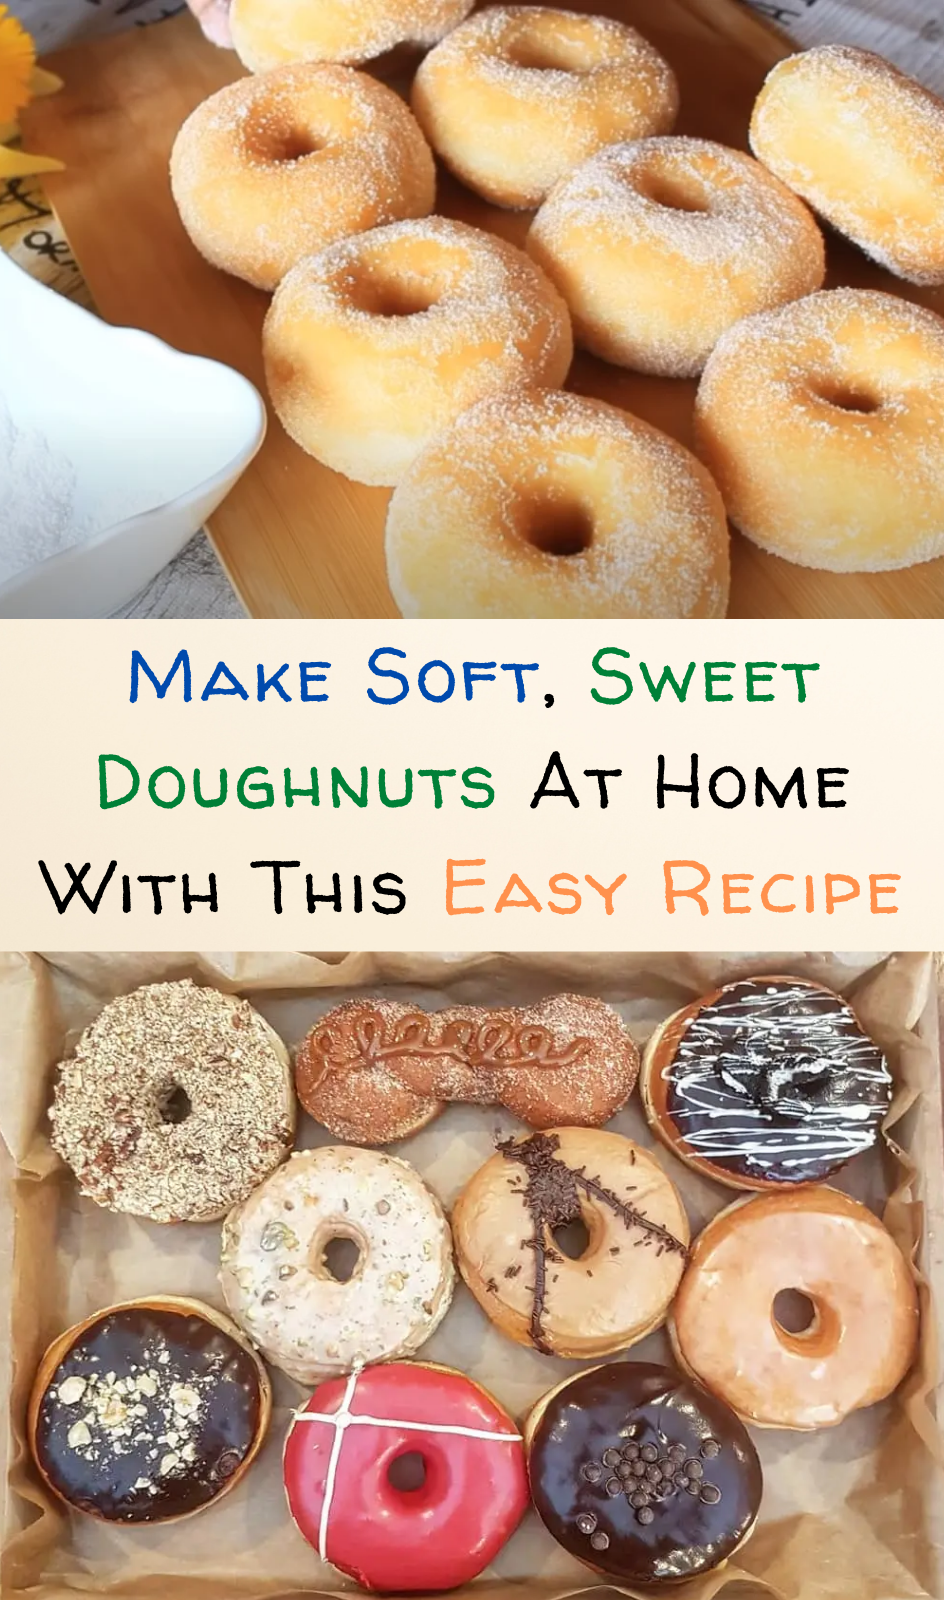 Make Soft, Sweet Doughnuts At Home With This Easy